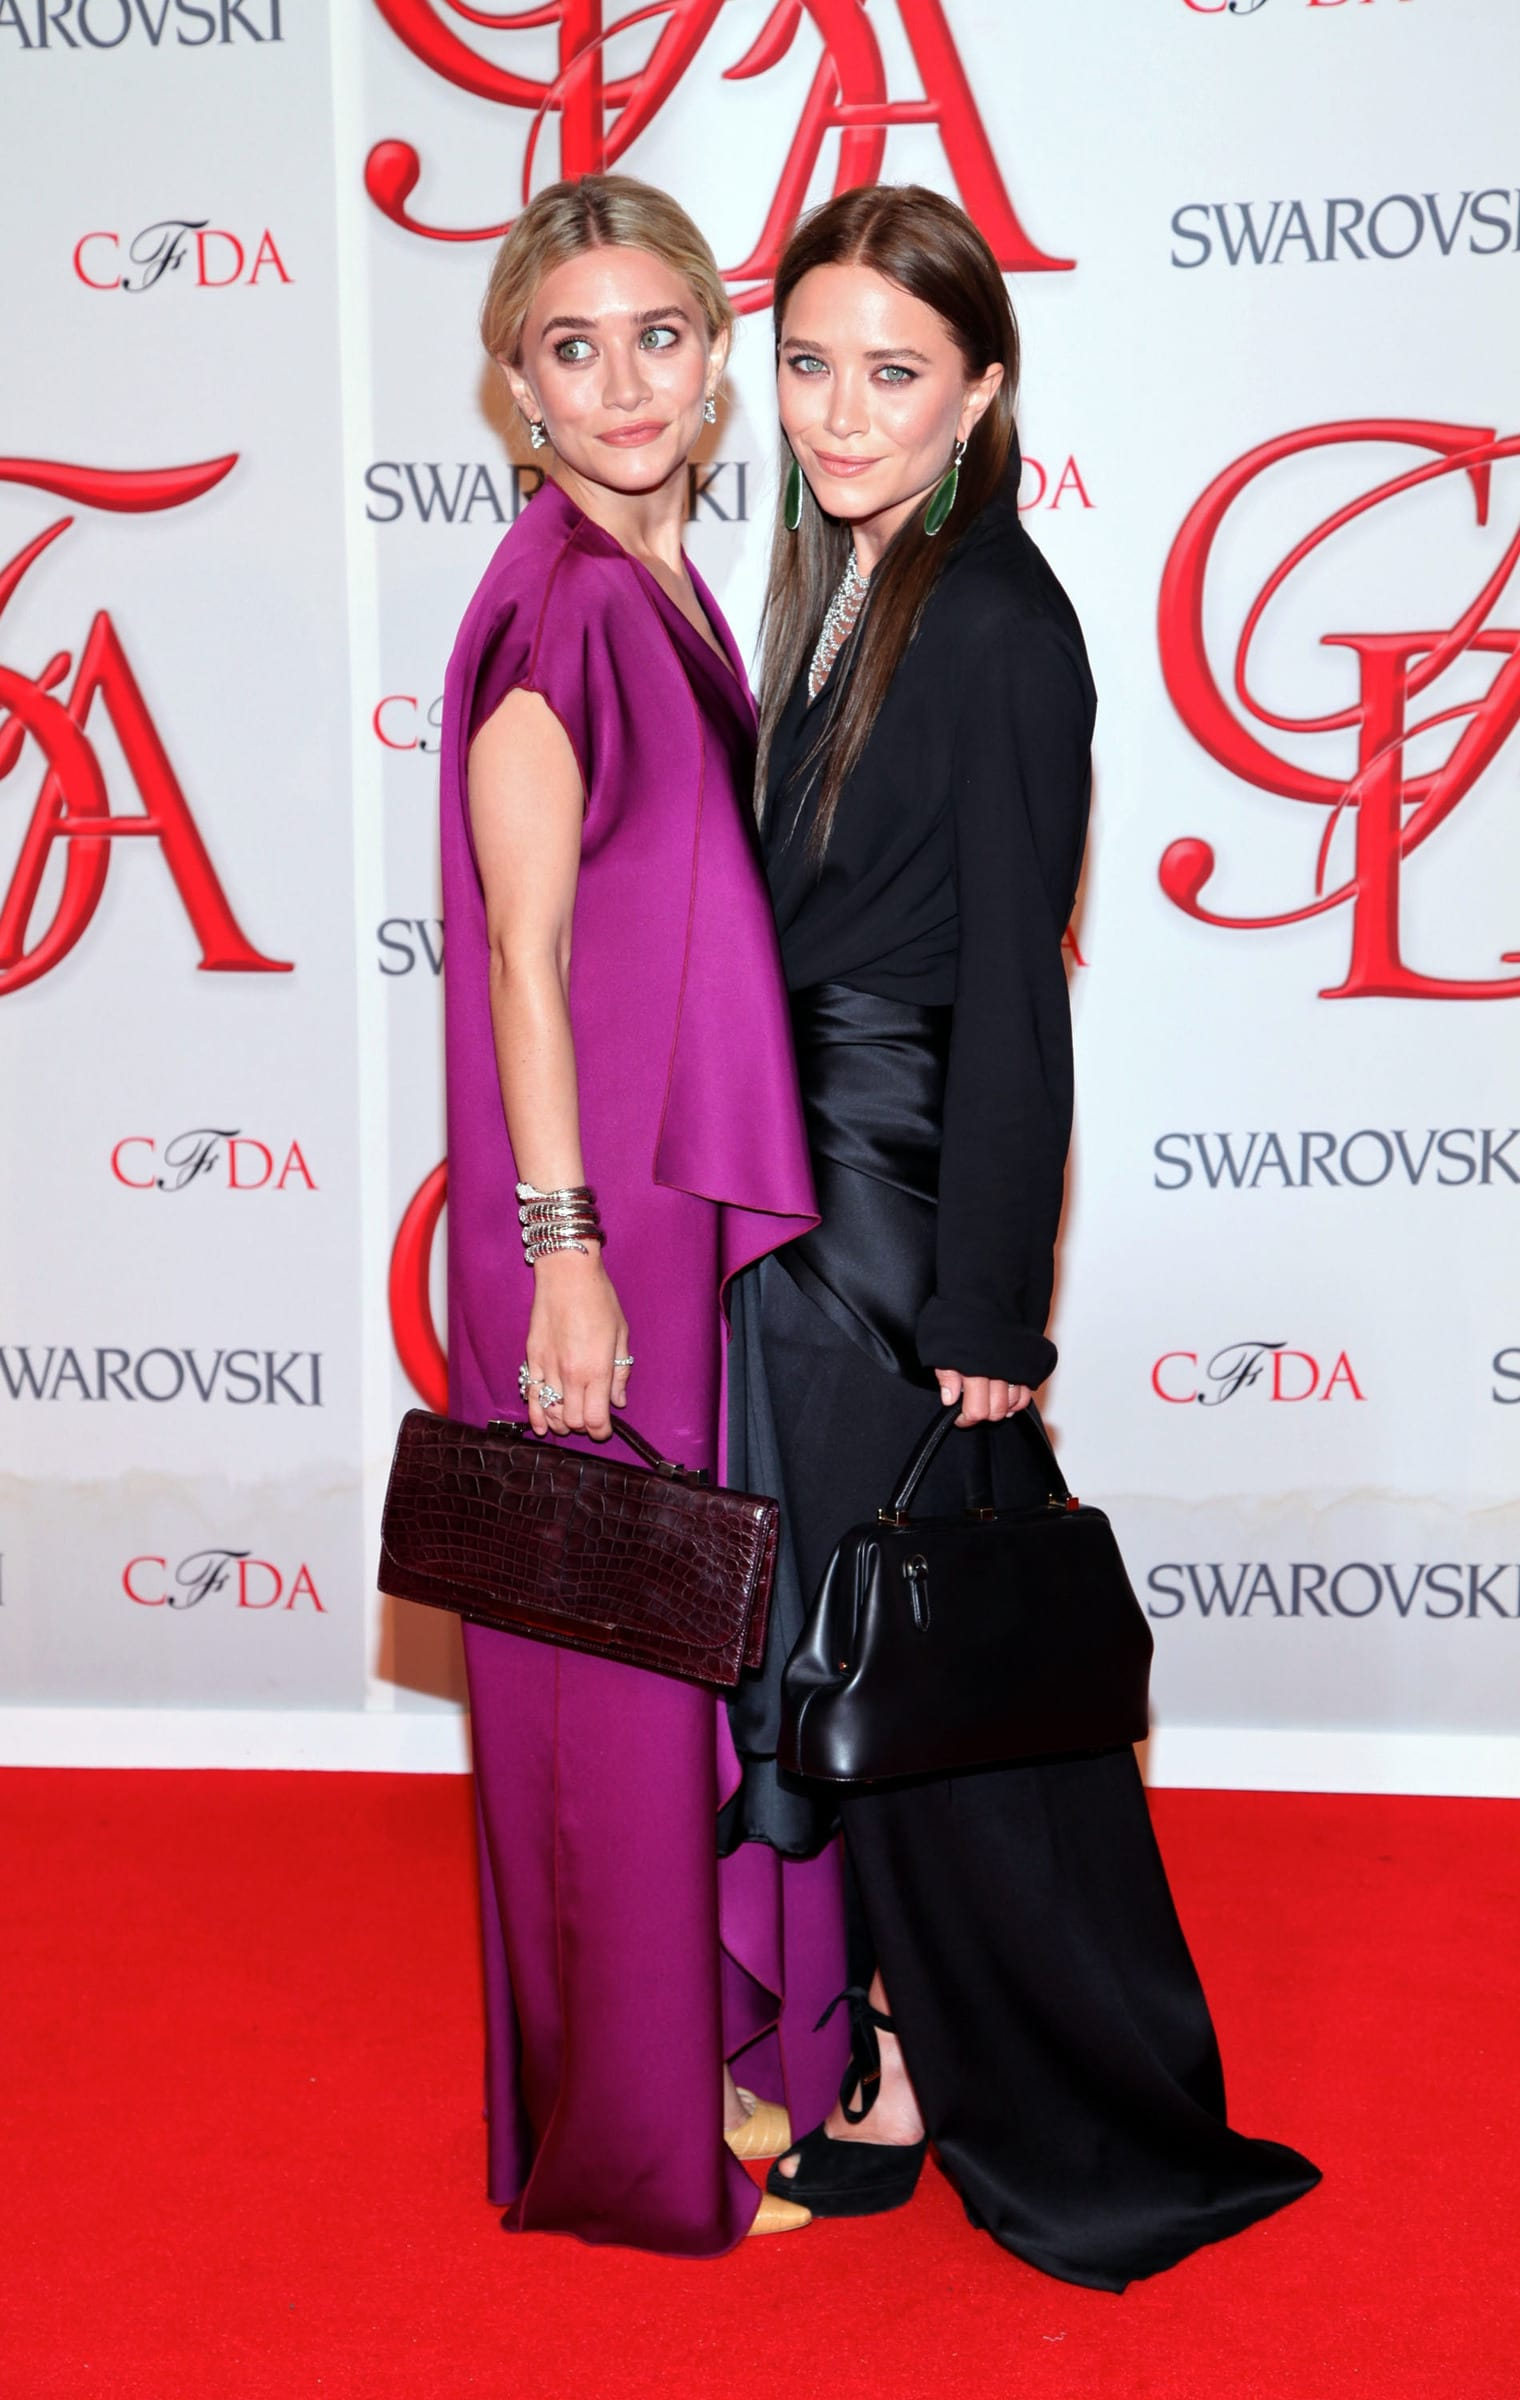 Olsens, Billy Reid Win Big at 2012 CFDAAwards recommendations